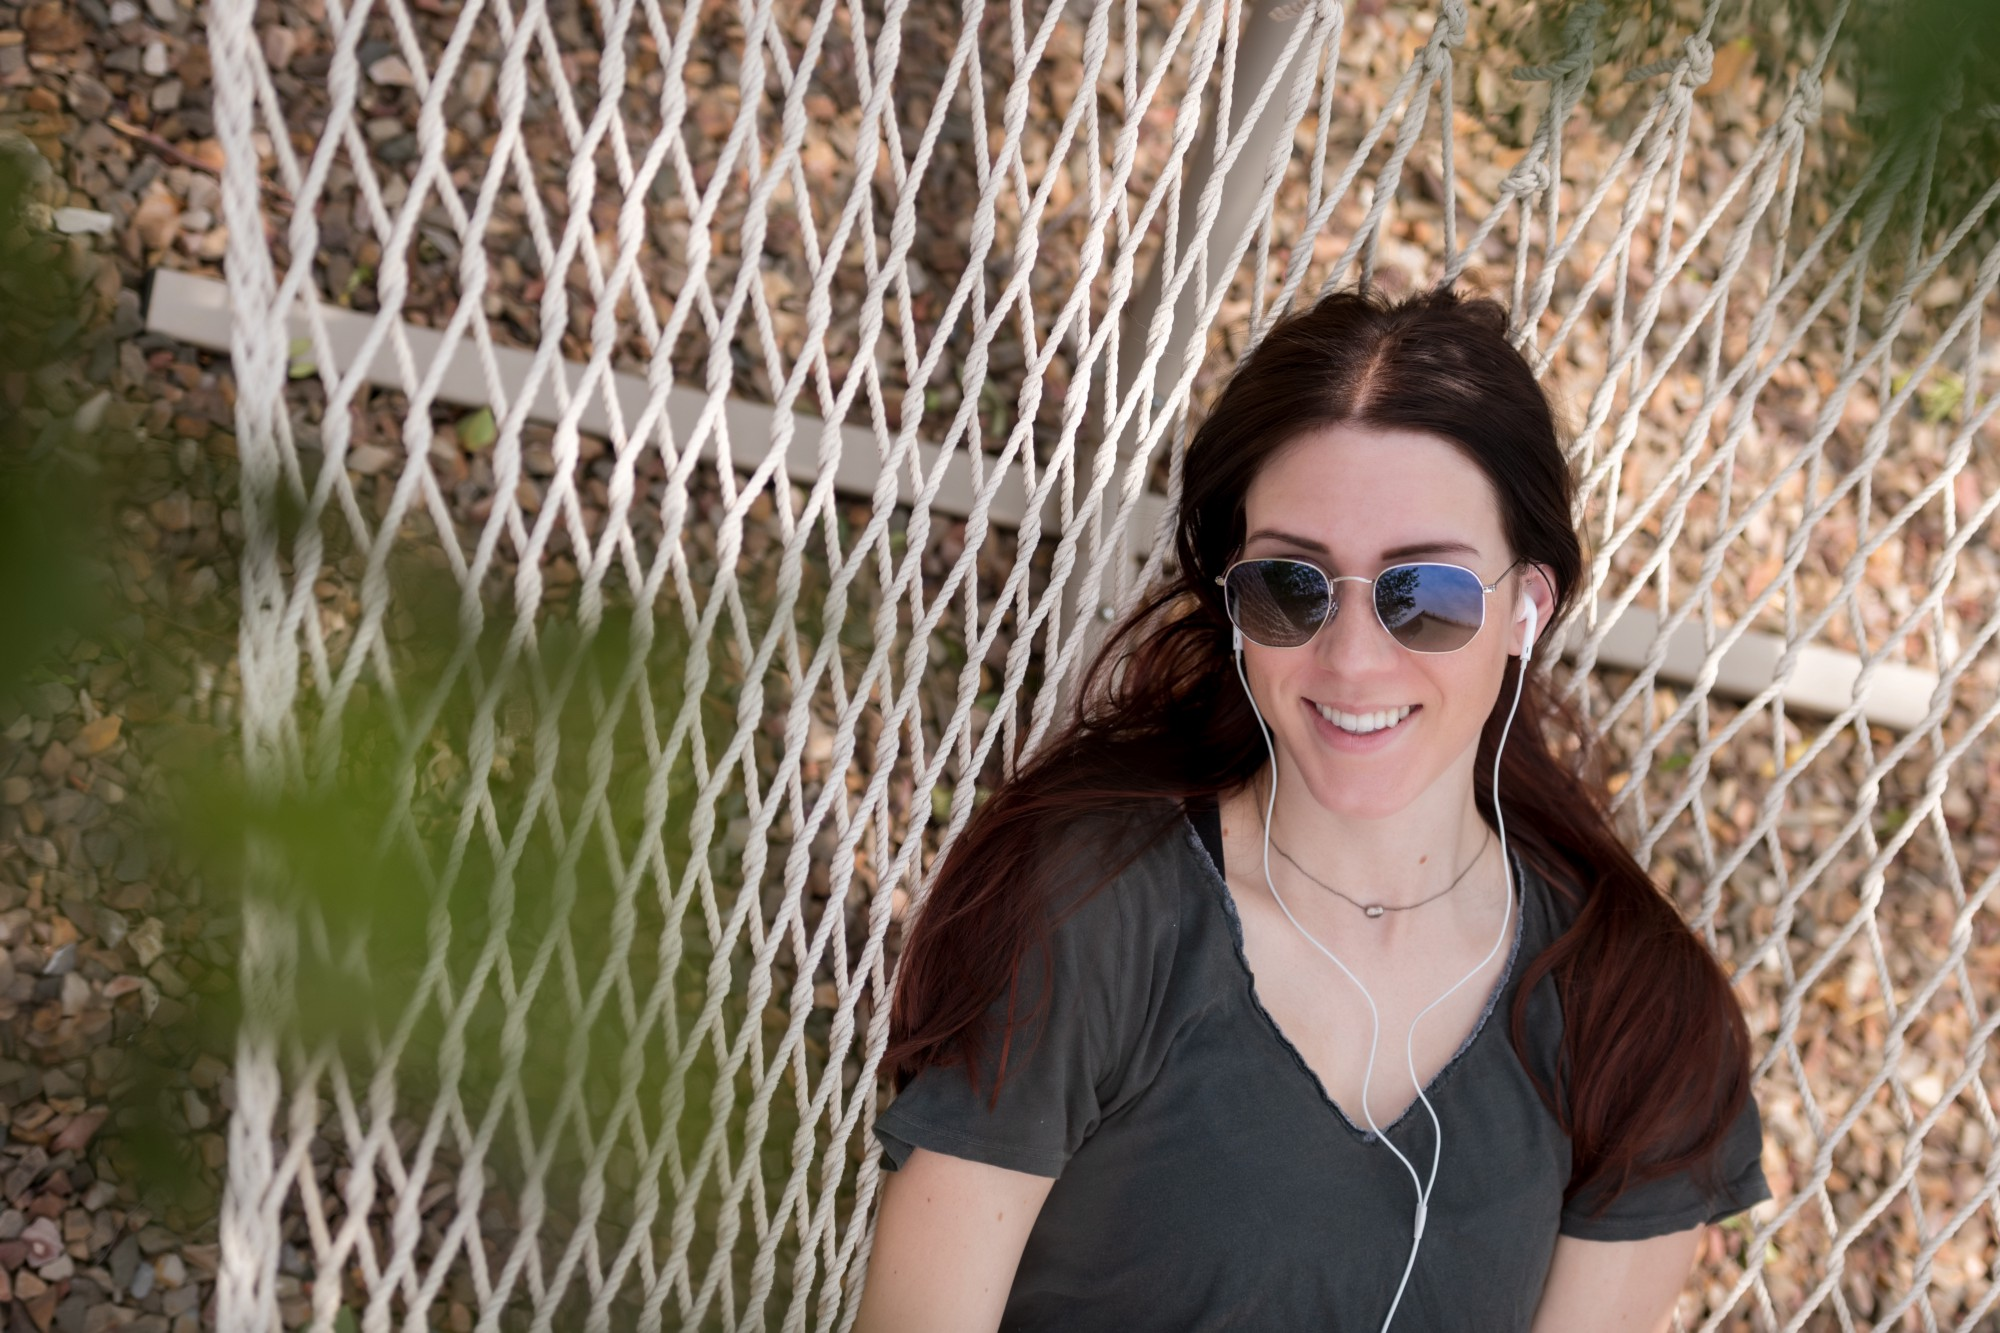 A twenty-something' woman, with earbuds, smiles while lying in a hammock and looking up through tree branches.